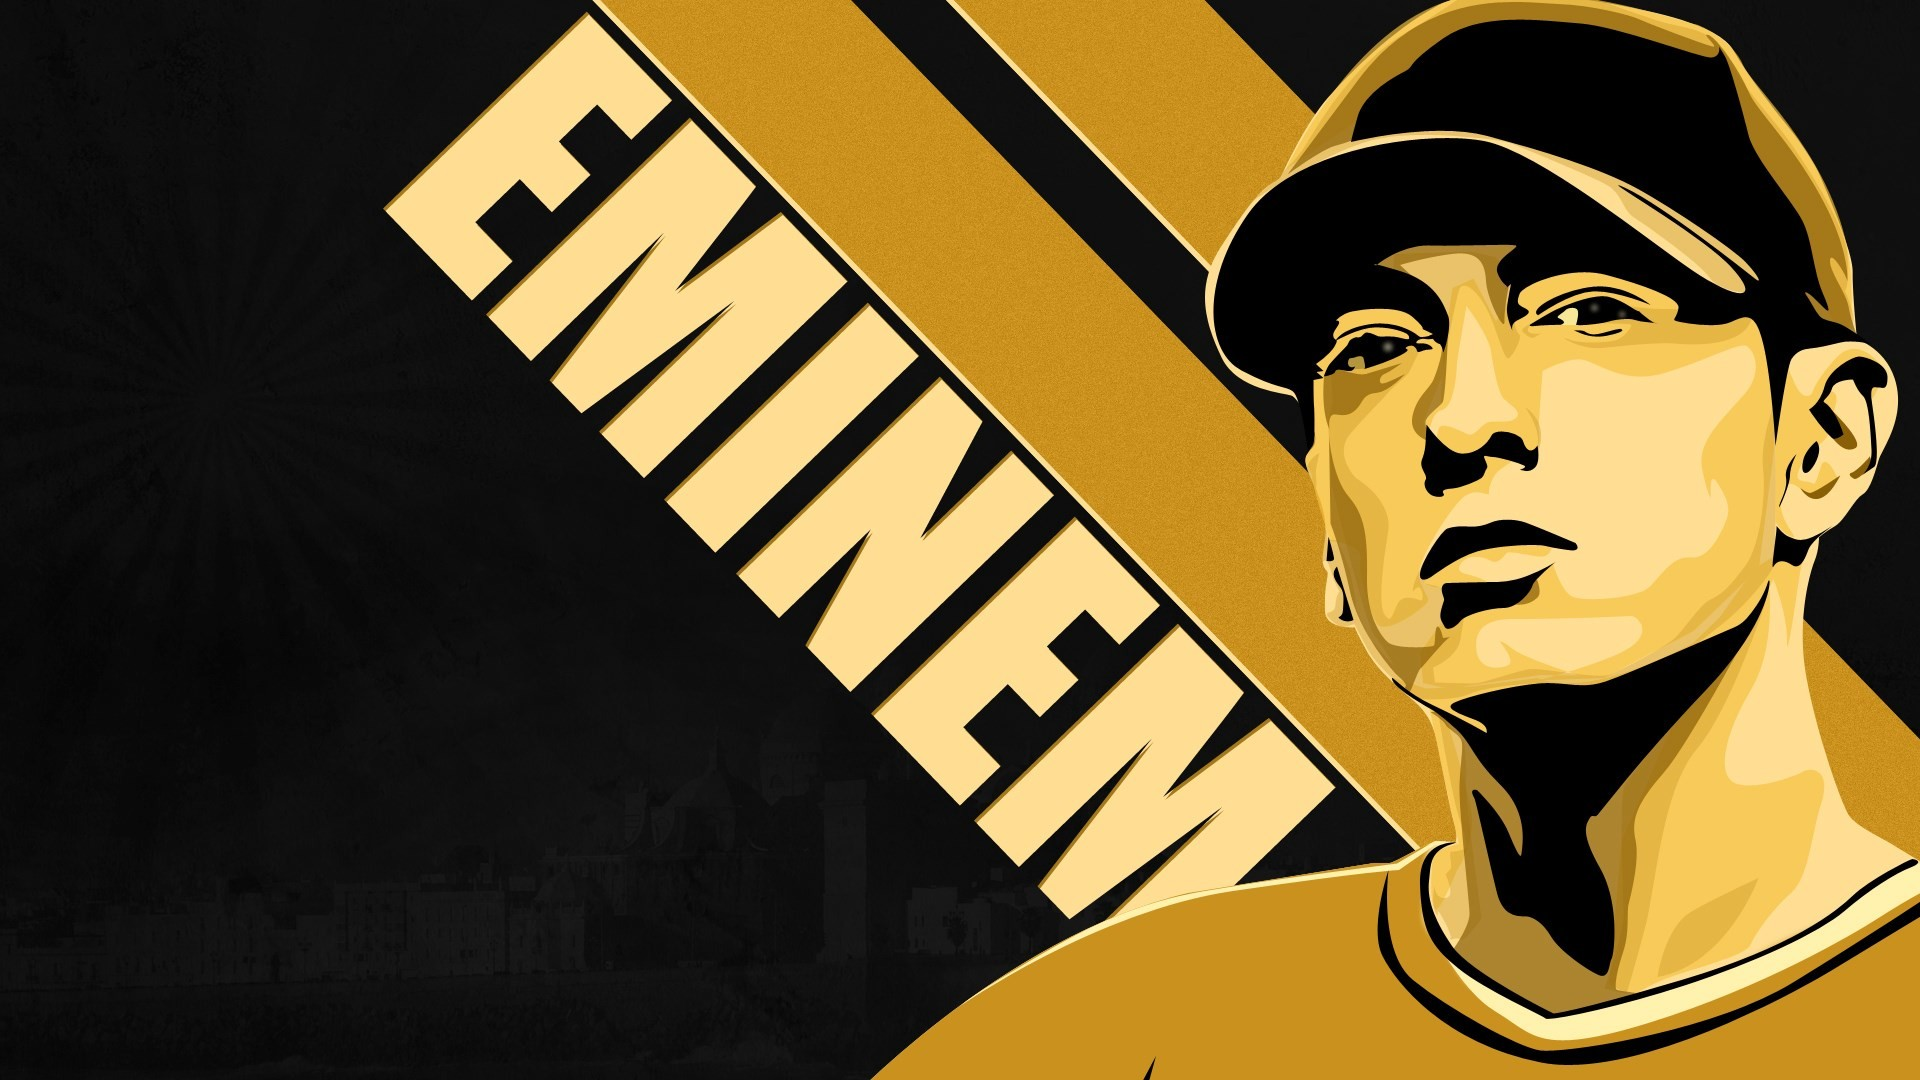 1920x1080 Background In High Quality - eminem